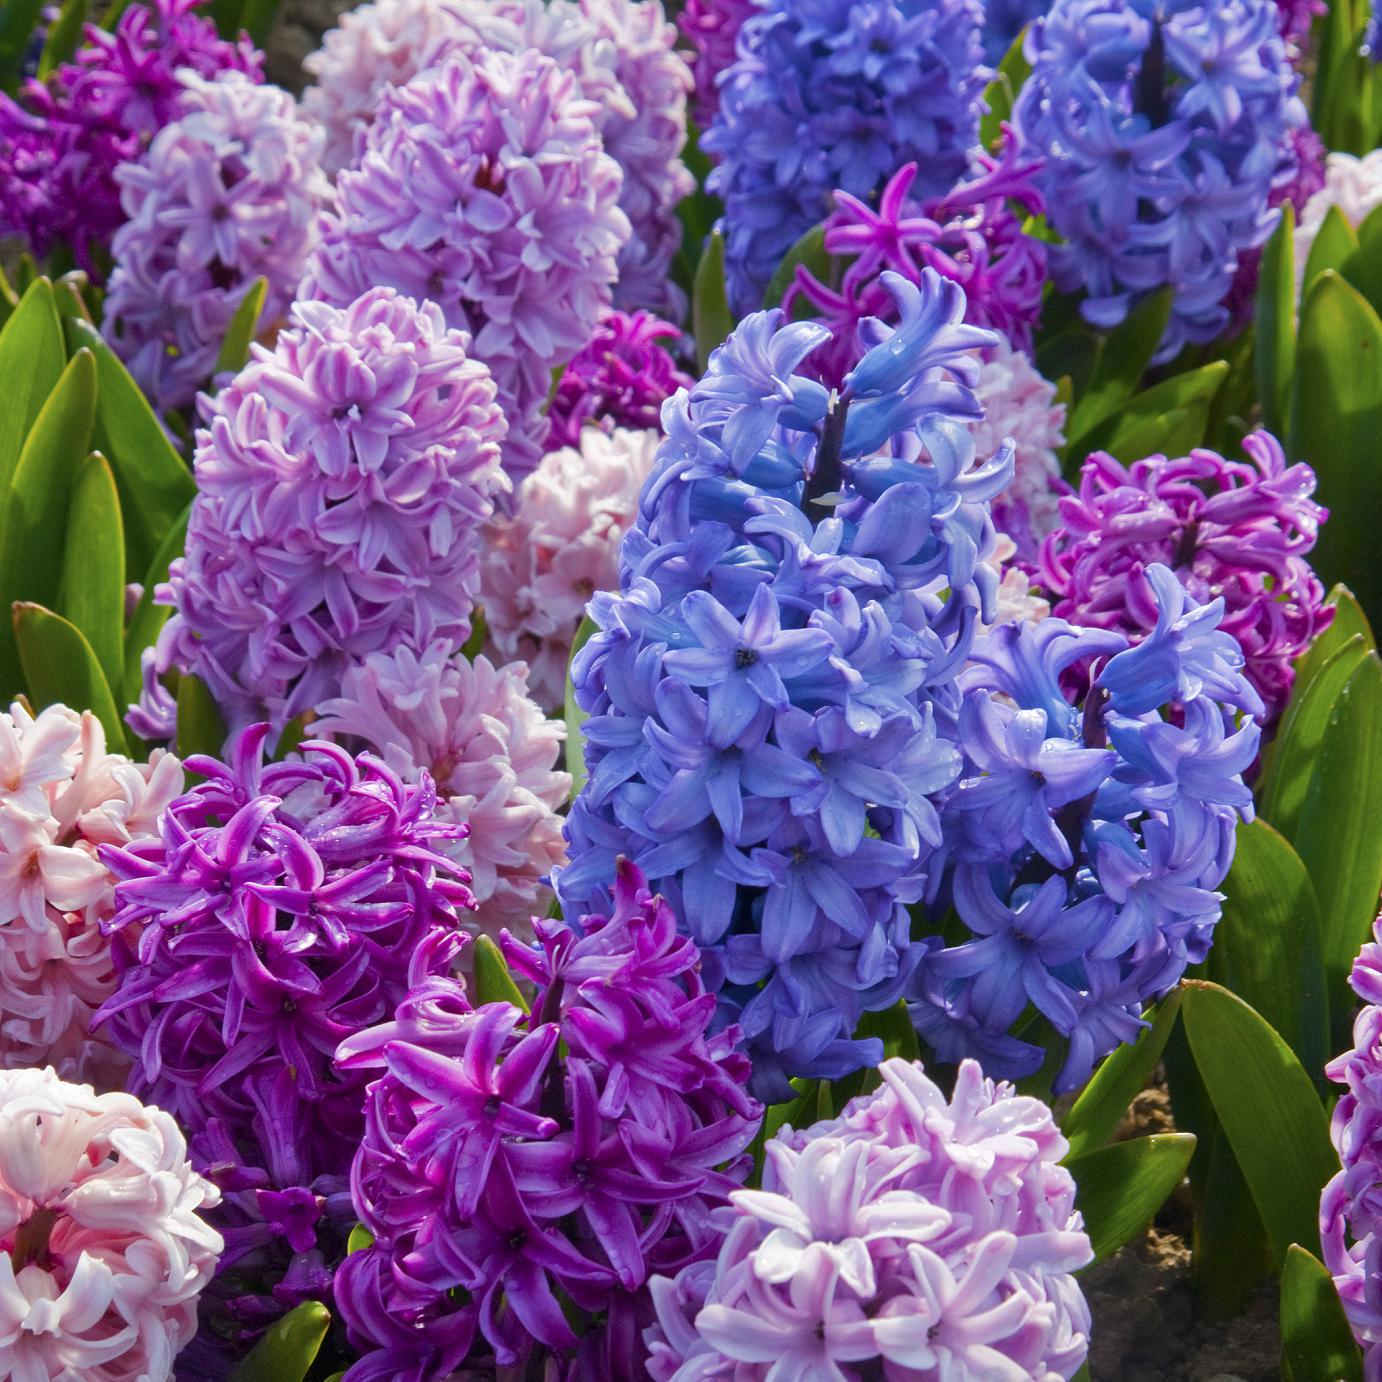 Images of Hyacinth | 1382x1382